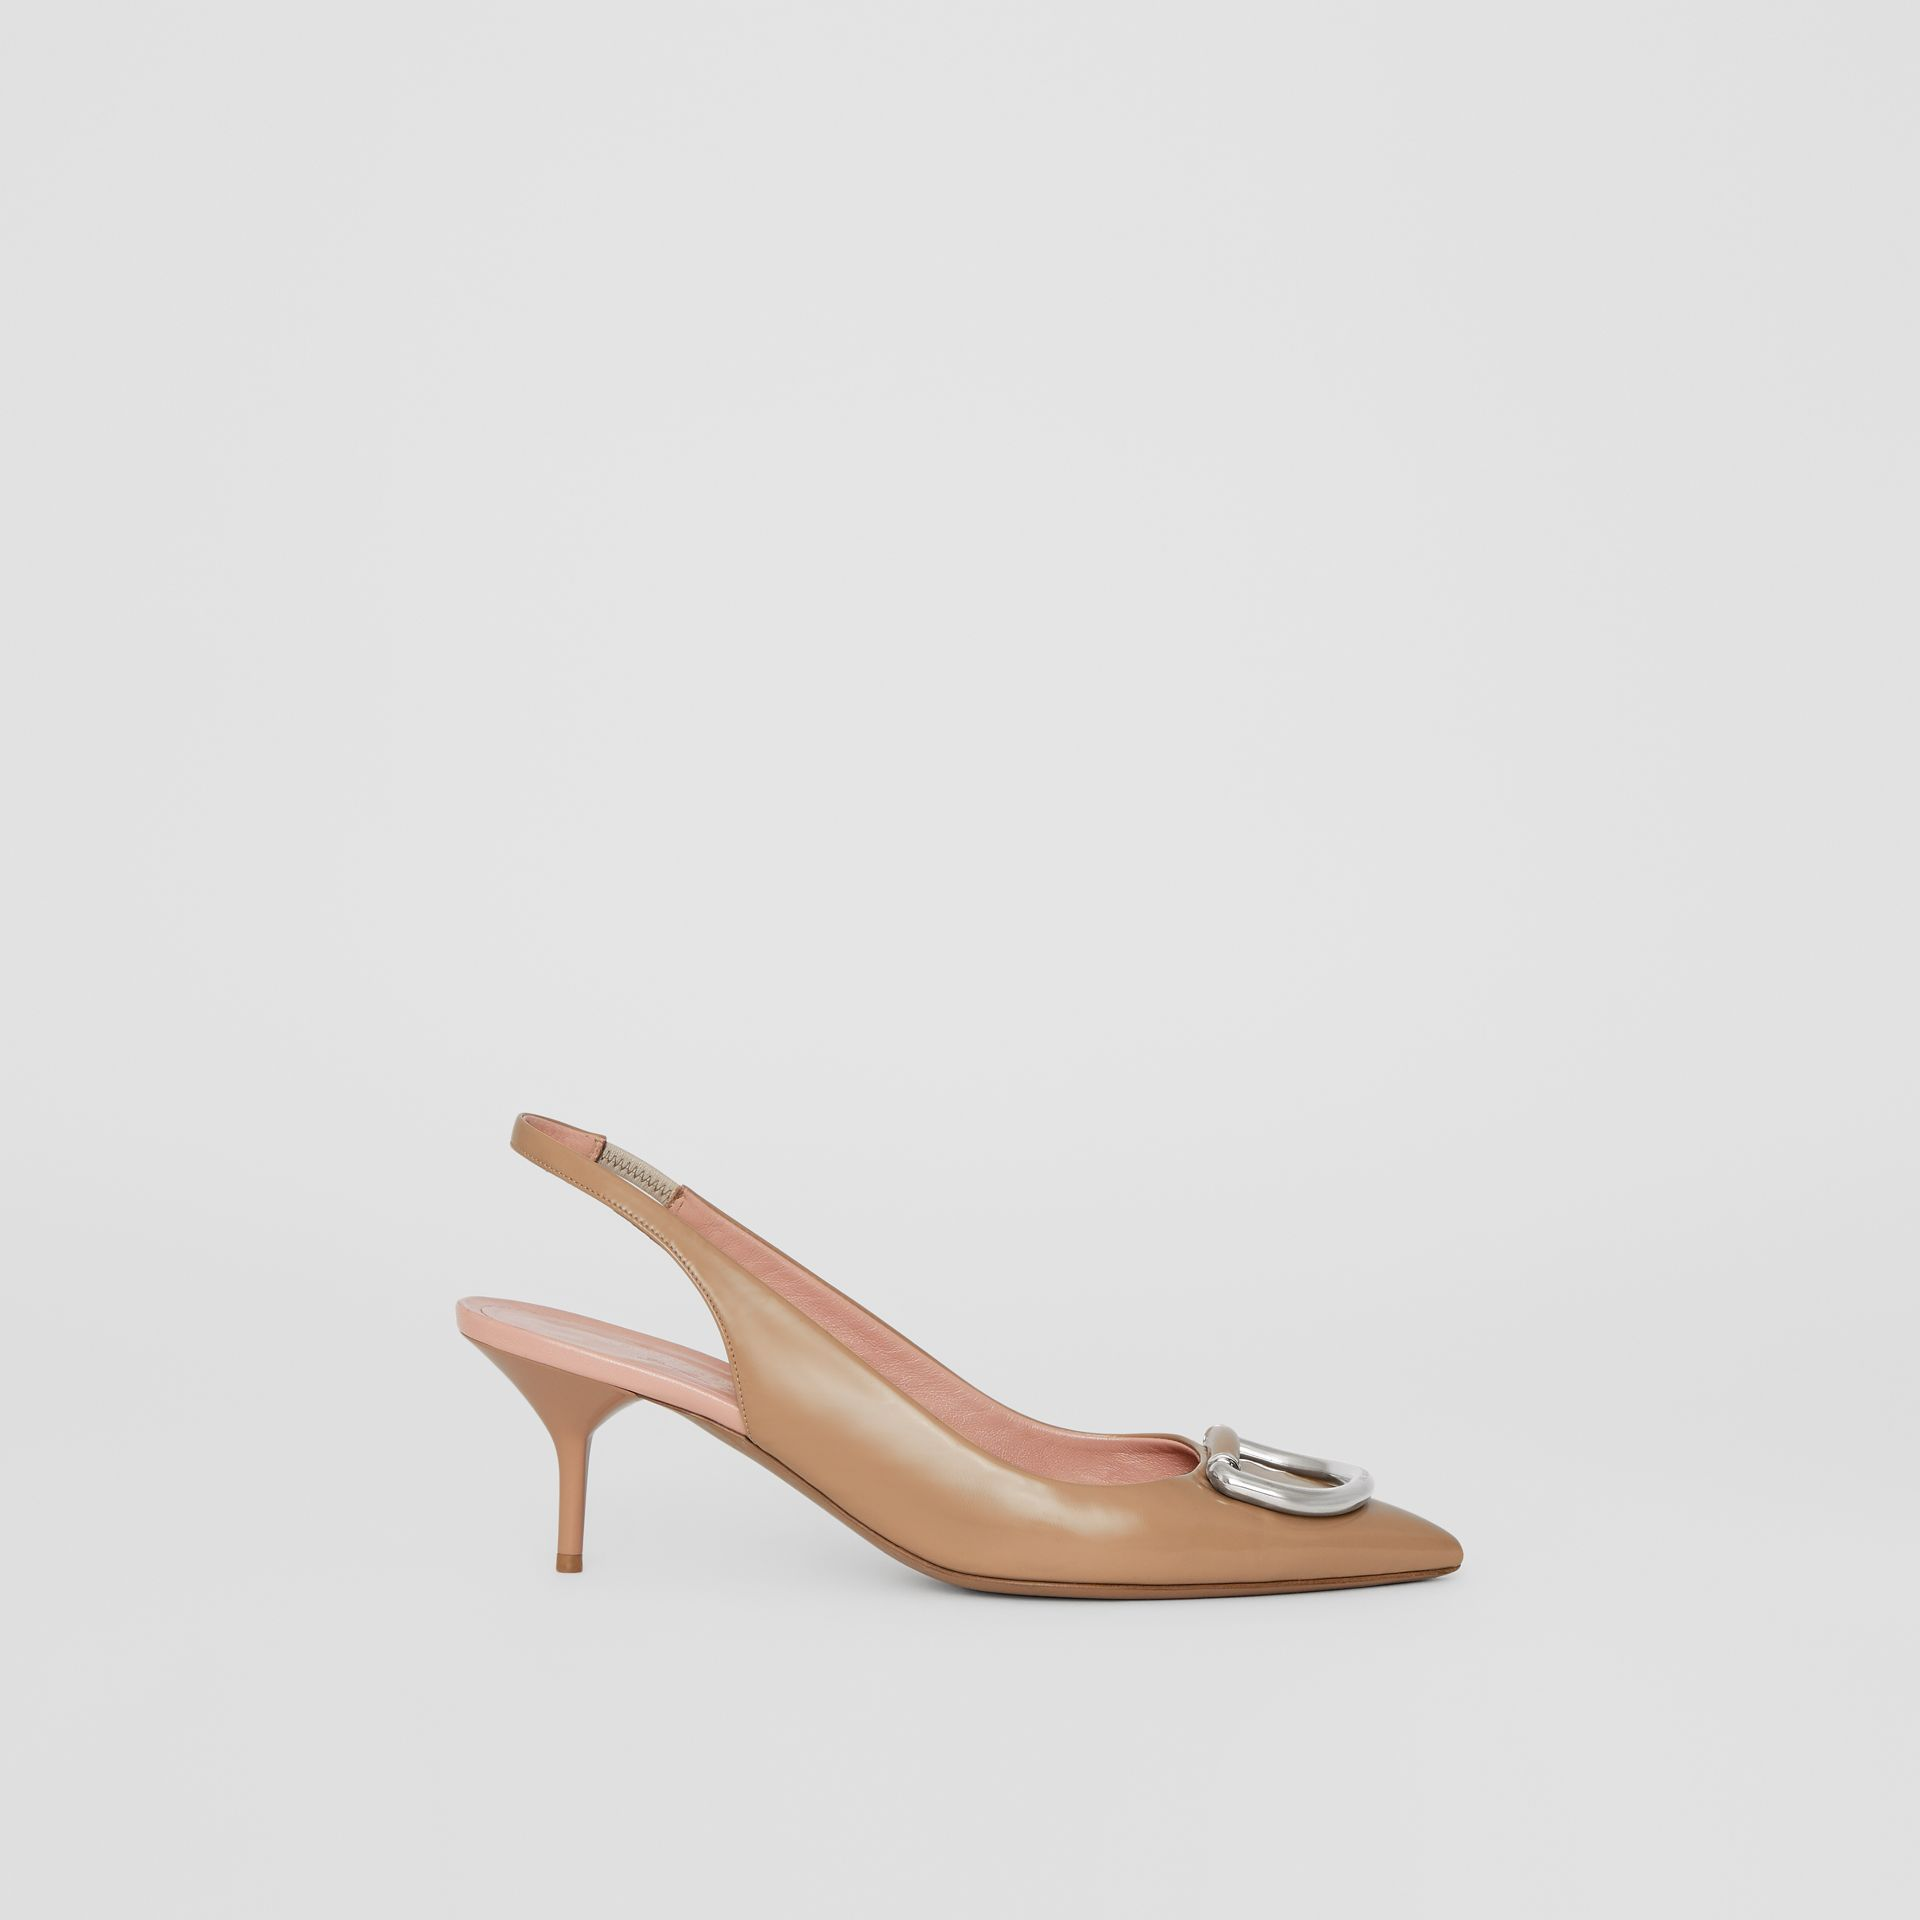 The Leather D-ring Slingback Pump in Nude Blush - Women | Burberry - gallery image 5